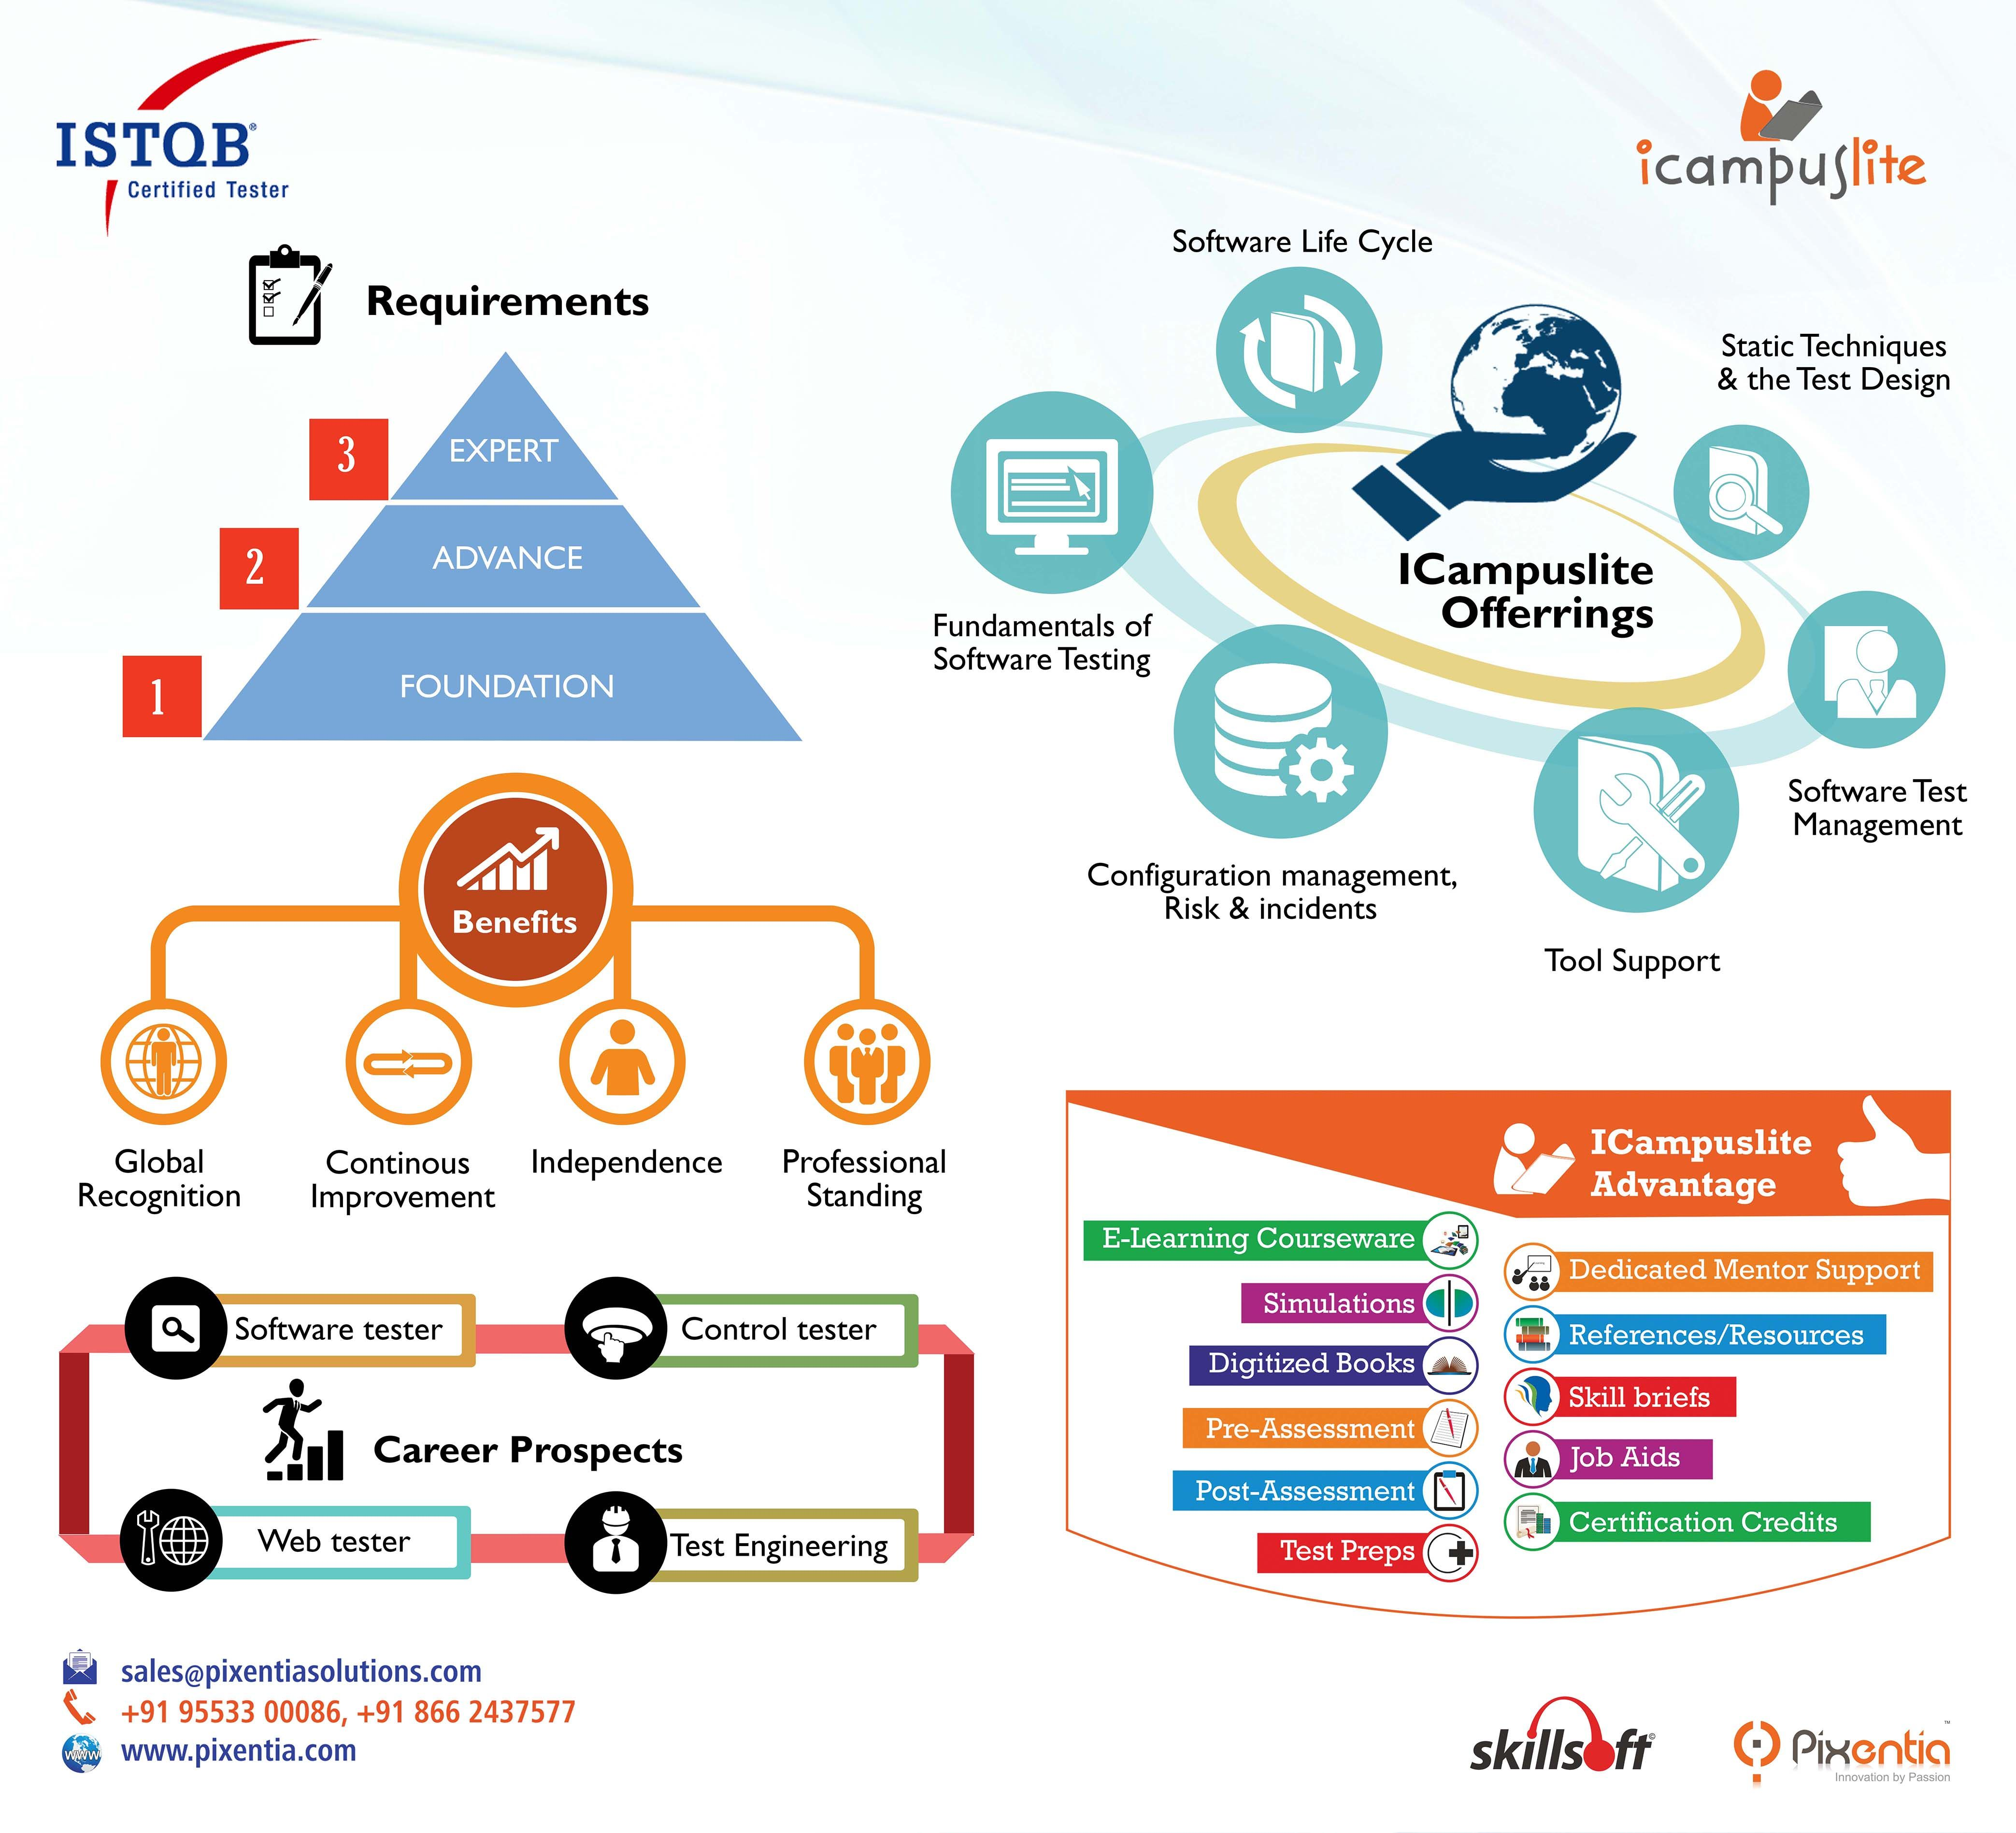 Prove your knowledge and skills in software testing become an prove your knowledge and skills in software testing become an istqb certified tester icampuslite delivers xflitez Images